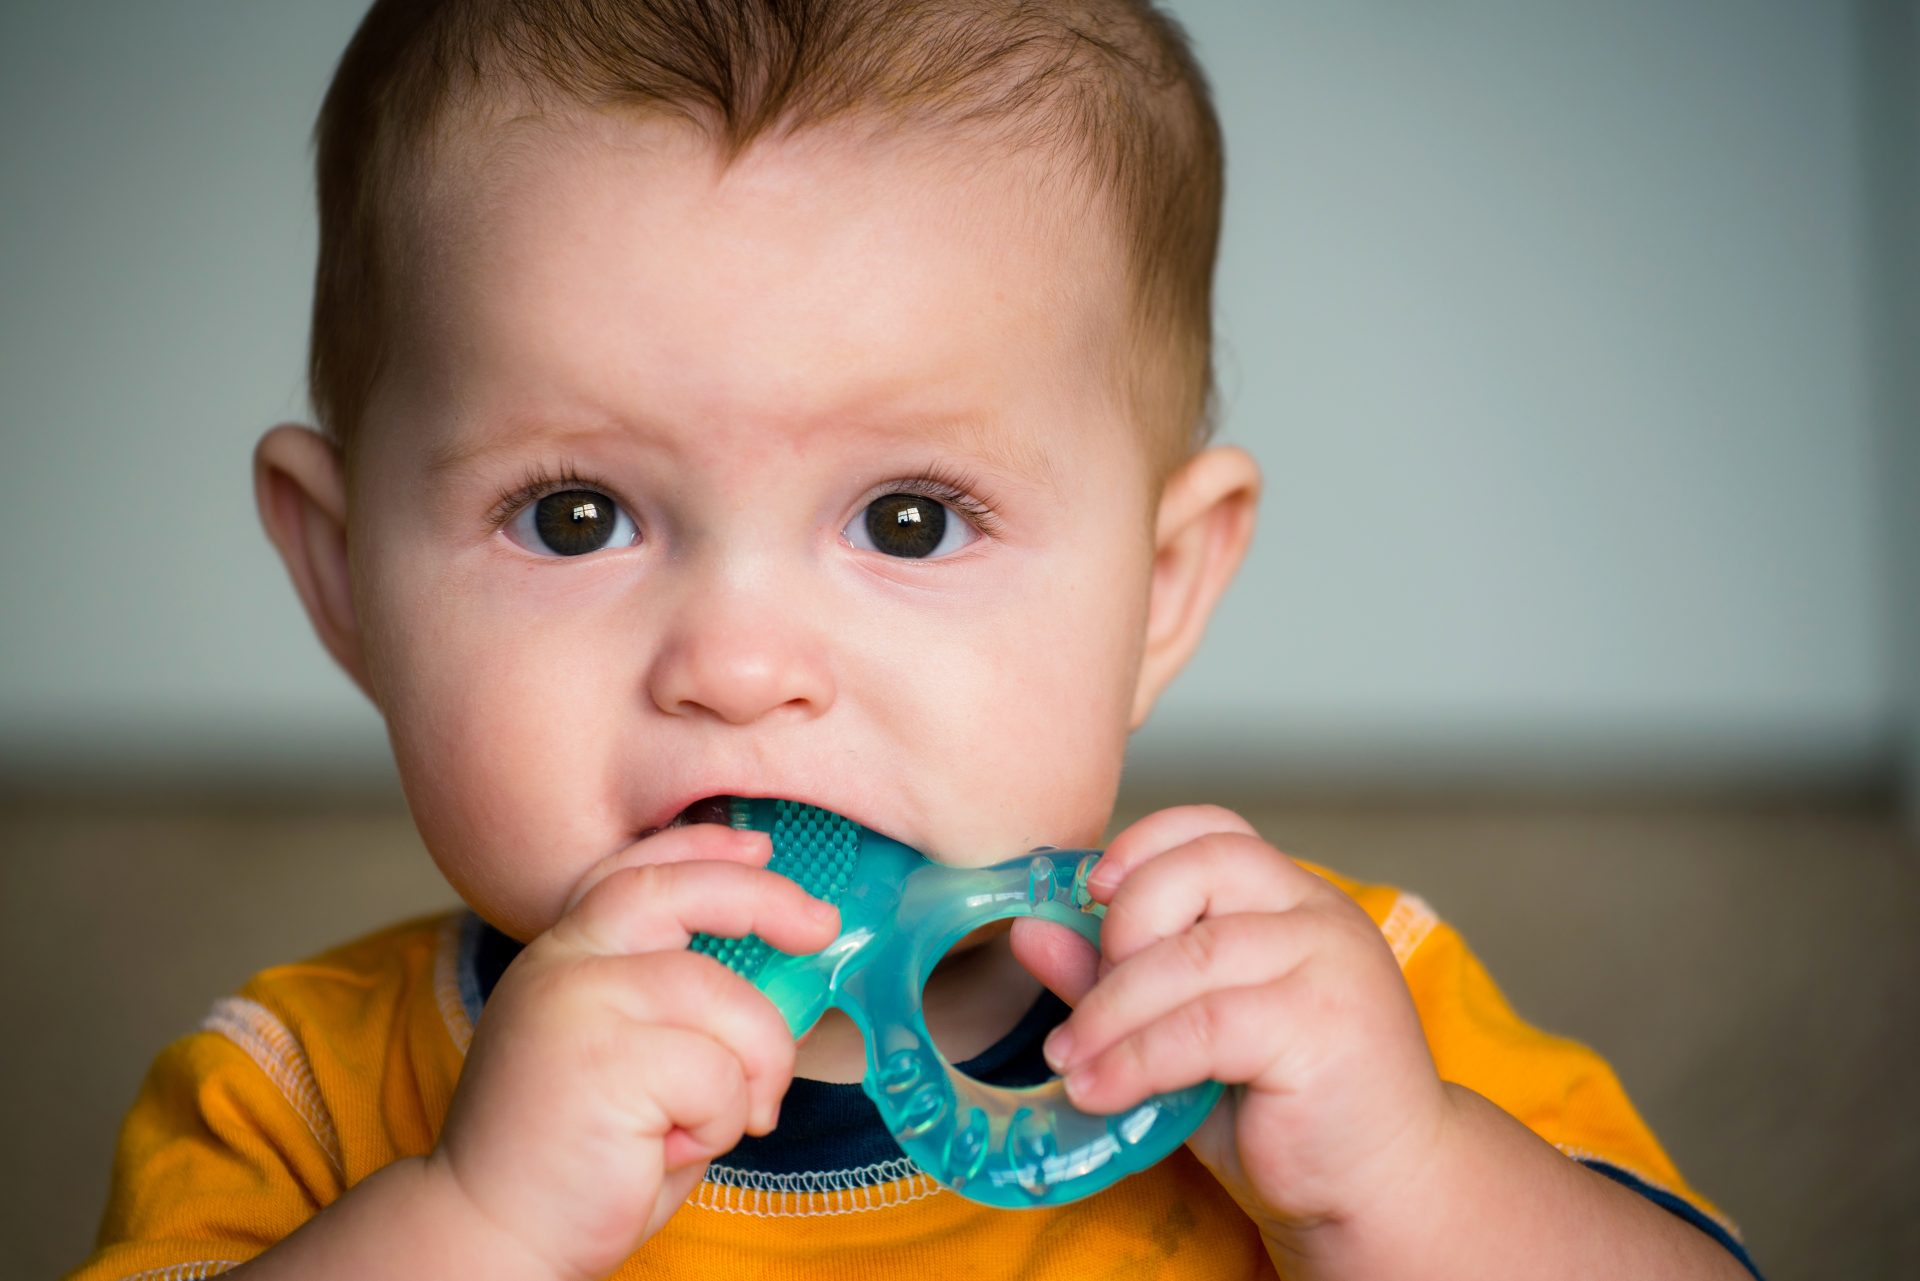 Toys For Teething : Teething the importance of infant teethbrushing kidds